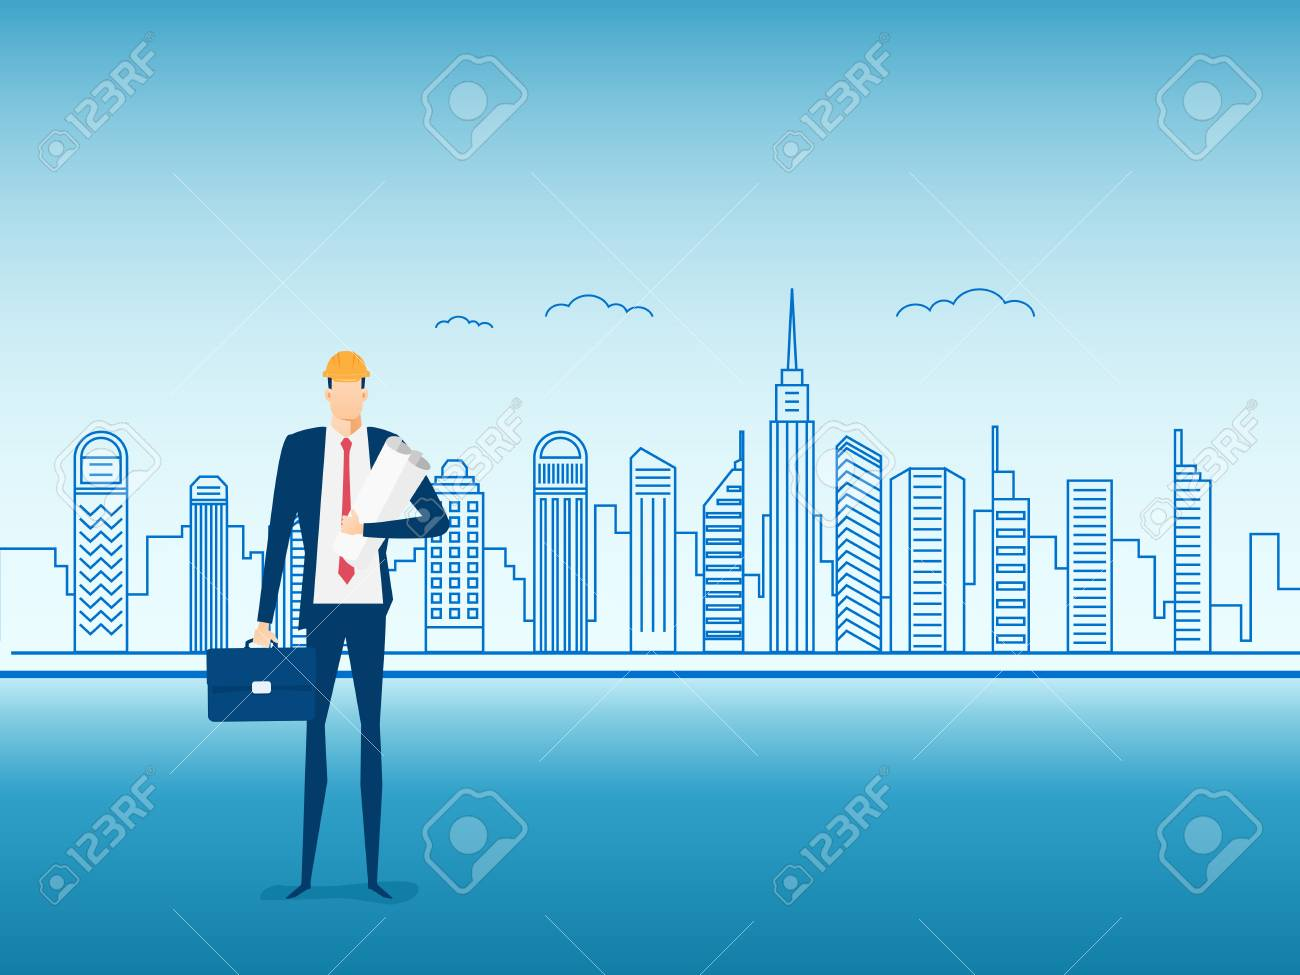 Engineer construction holding a blueprint paper on city screen engineer construction holding a blueprint paper on city screen character design cartoon vector illustration malvernweather Gallery